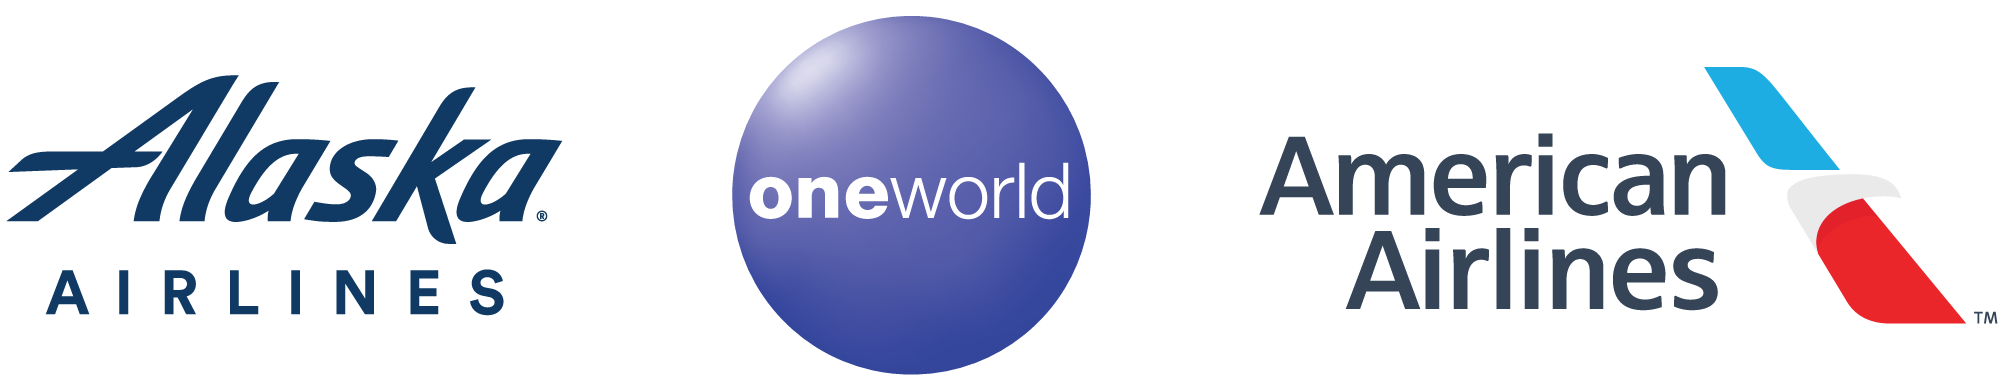 Alaska® Airlines - oneworld - American Airlines™